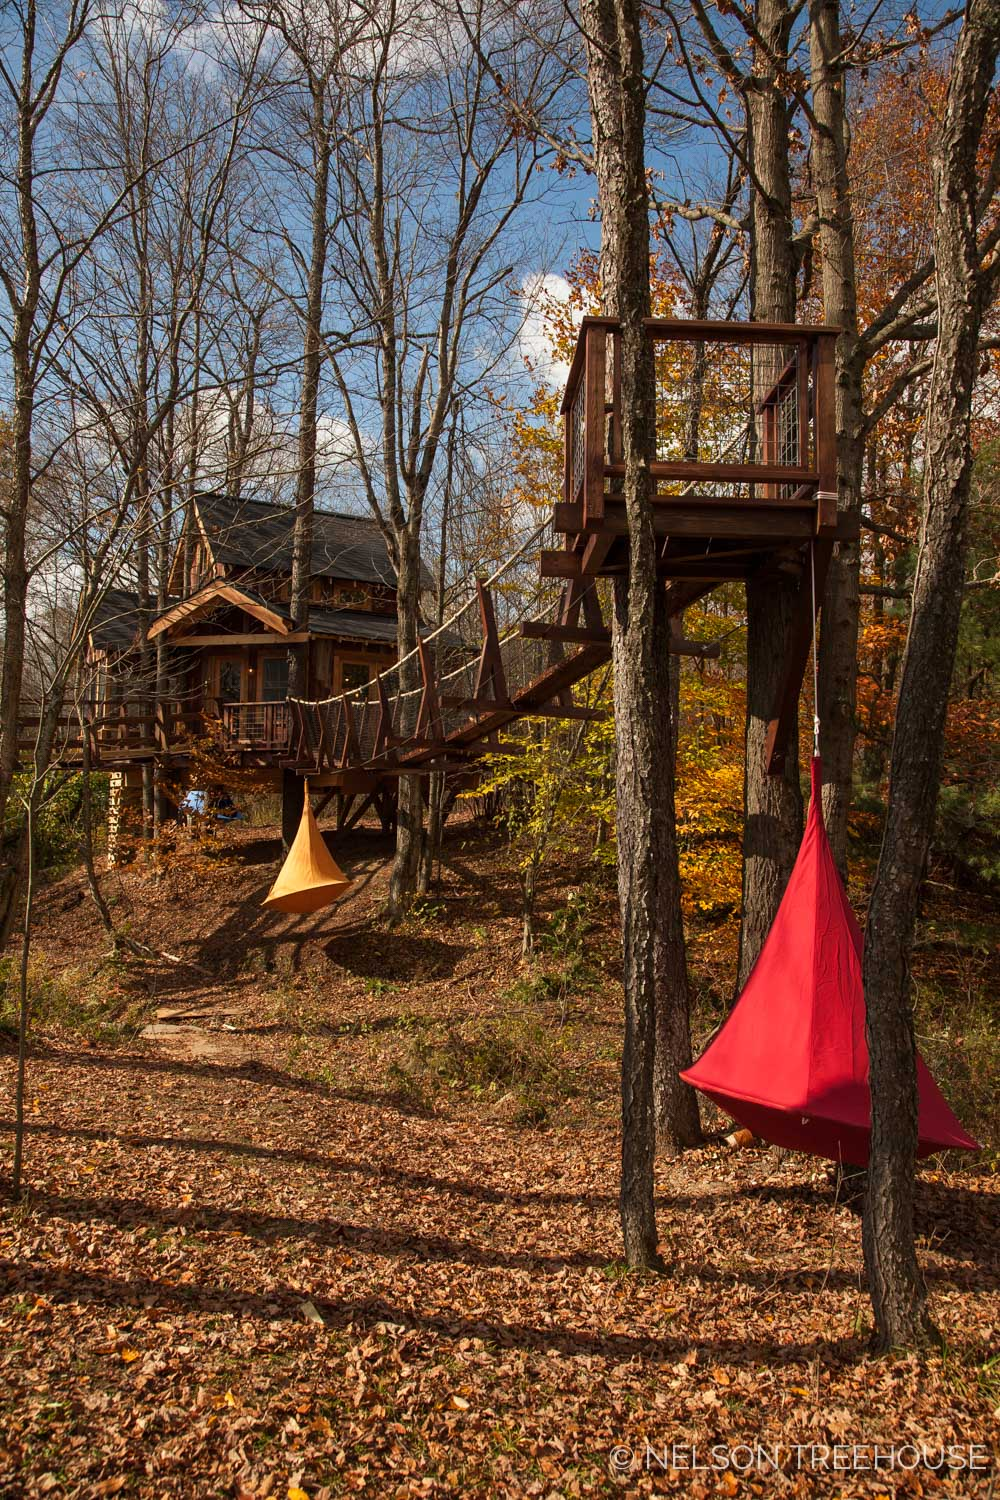 Nelson Treehouse - Adventure TEmple Suspension bridge